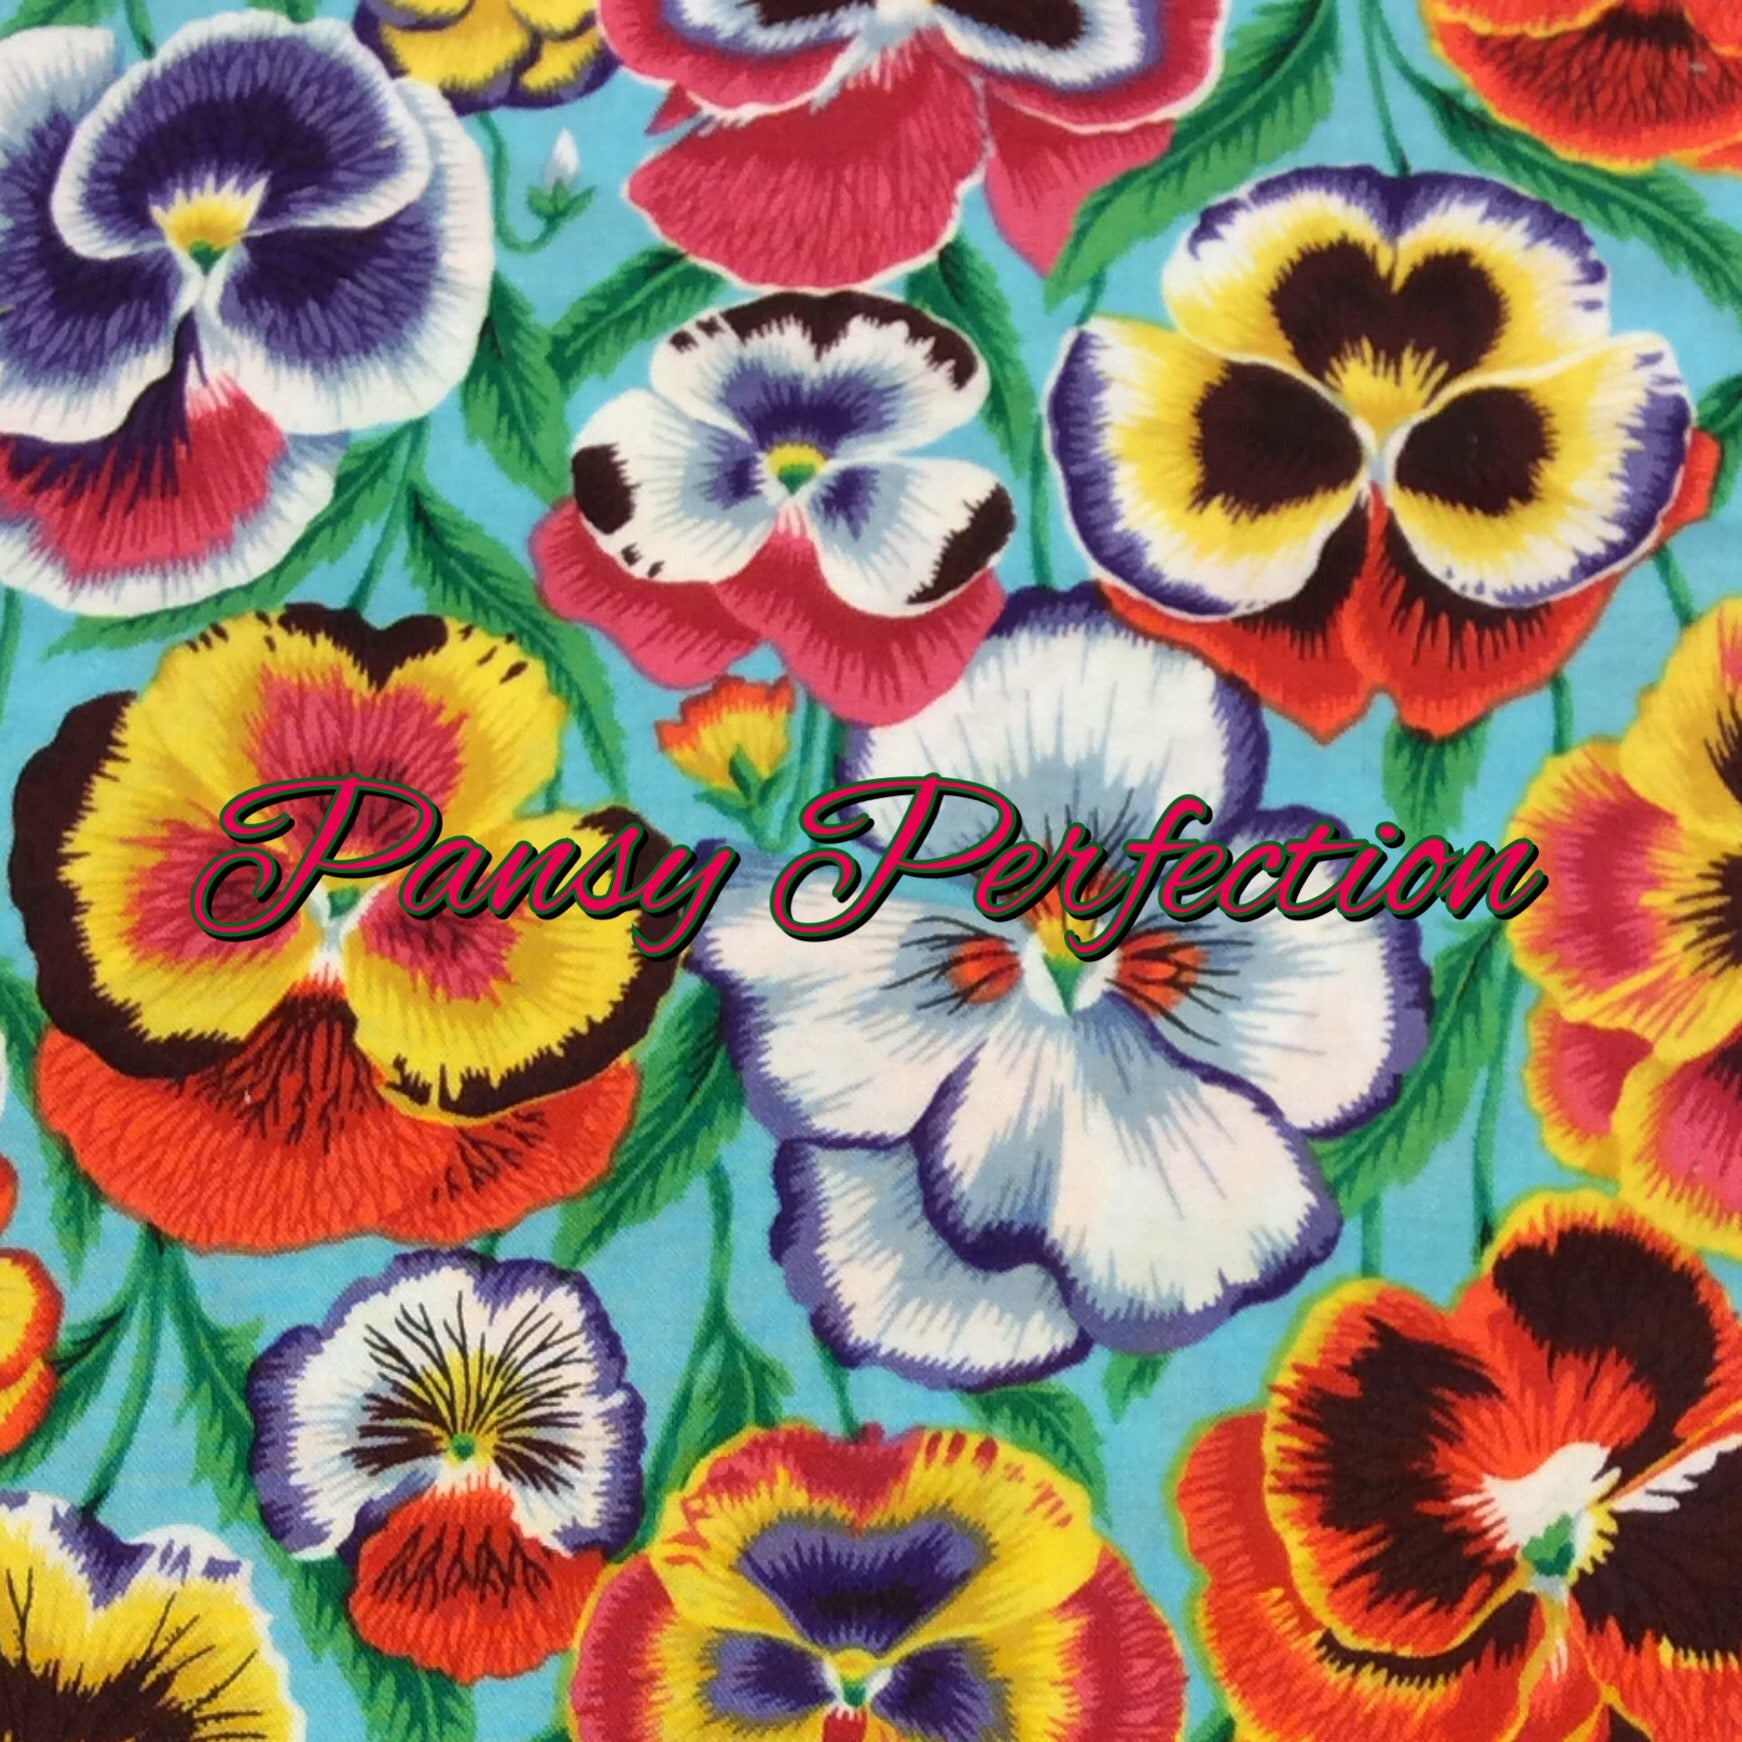 Pansy Perfection - Quilter's Cotton